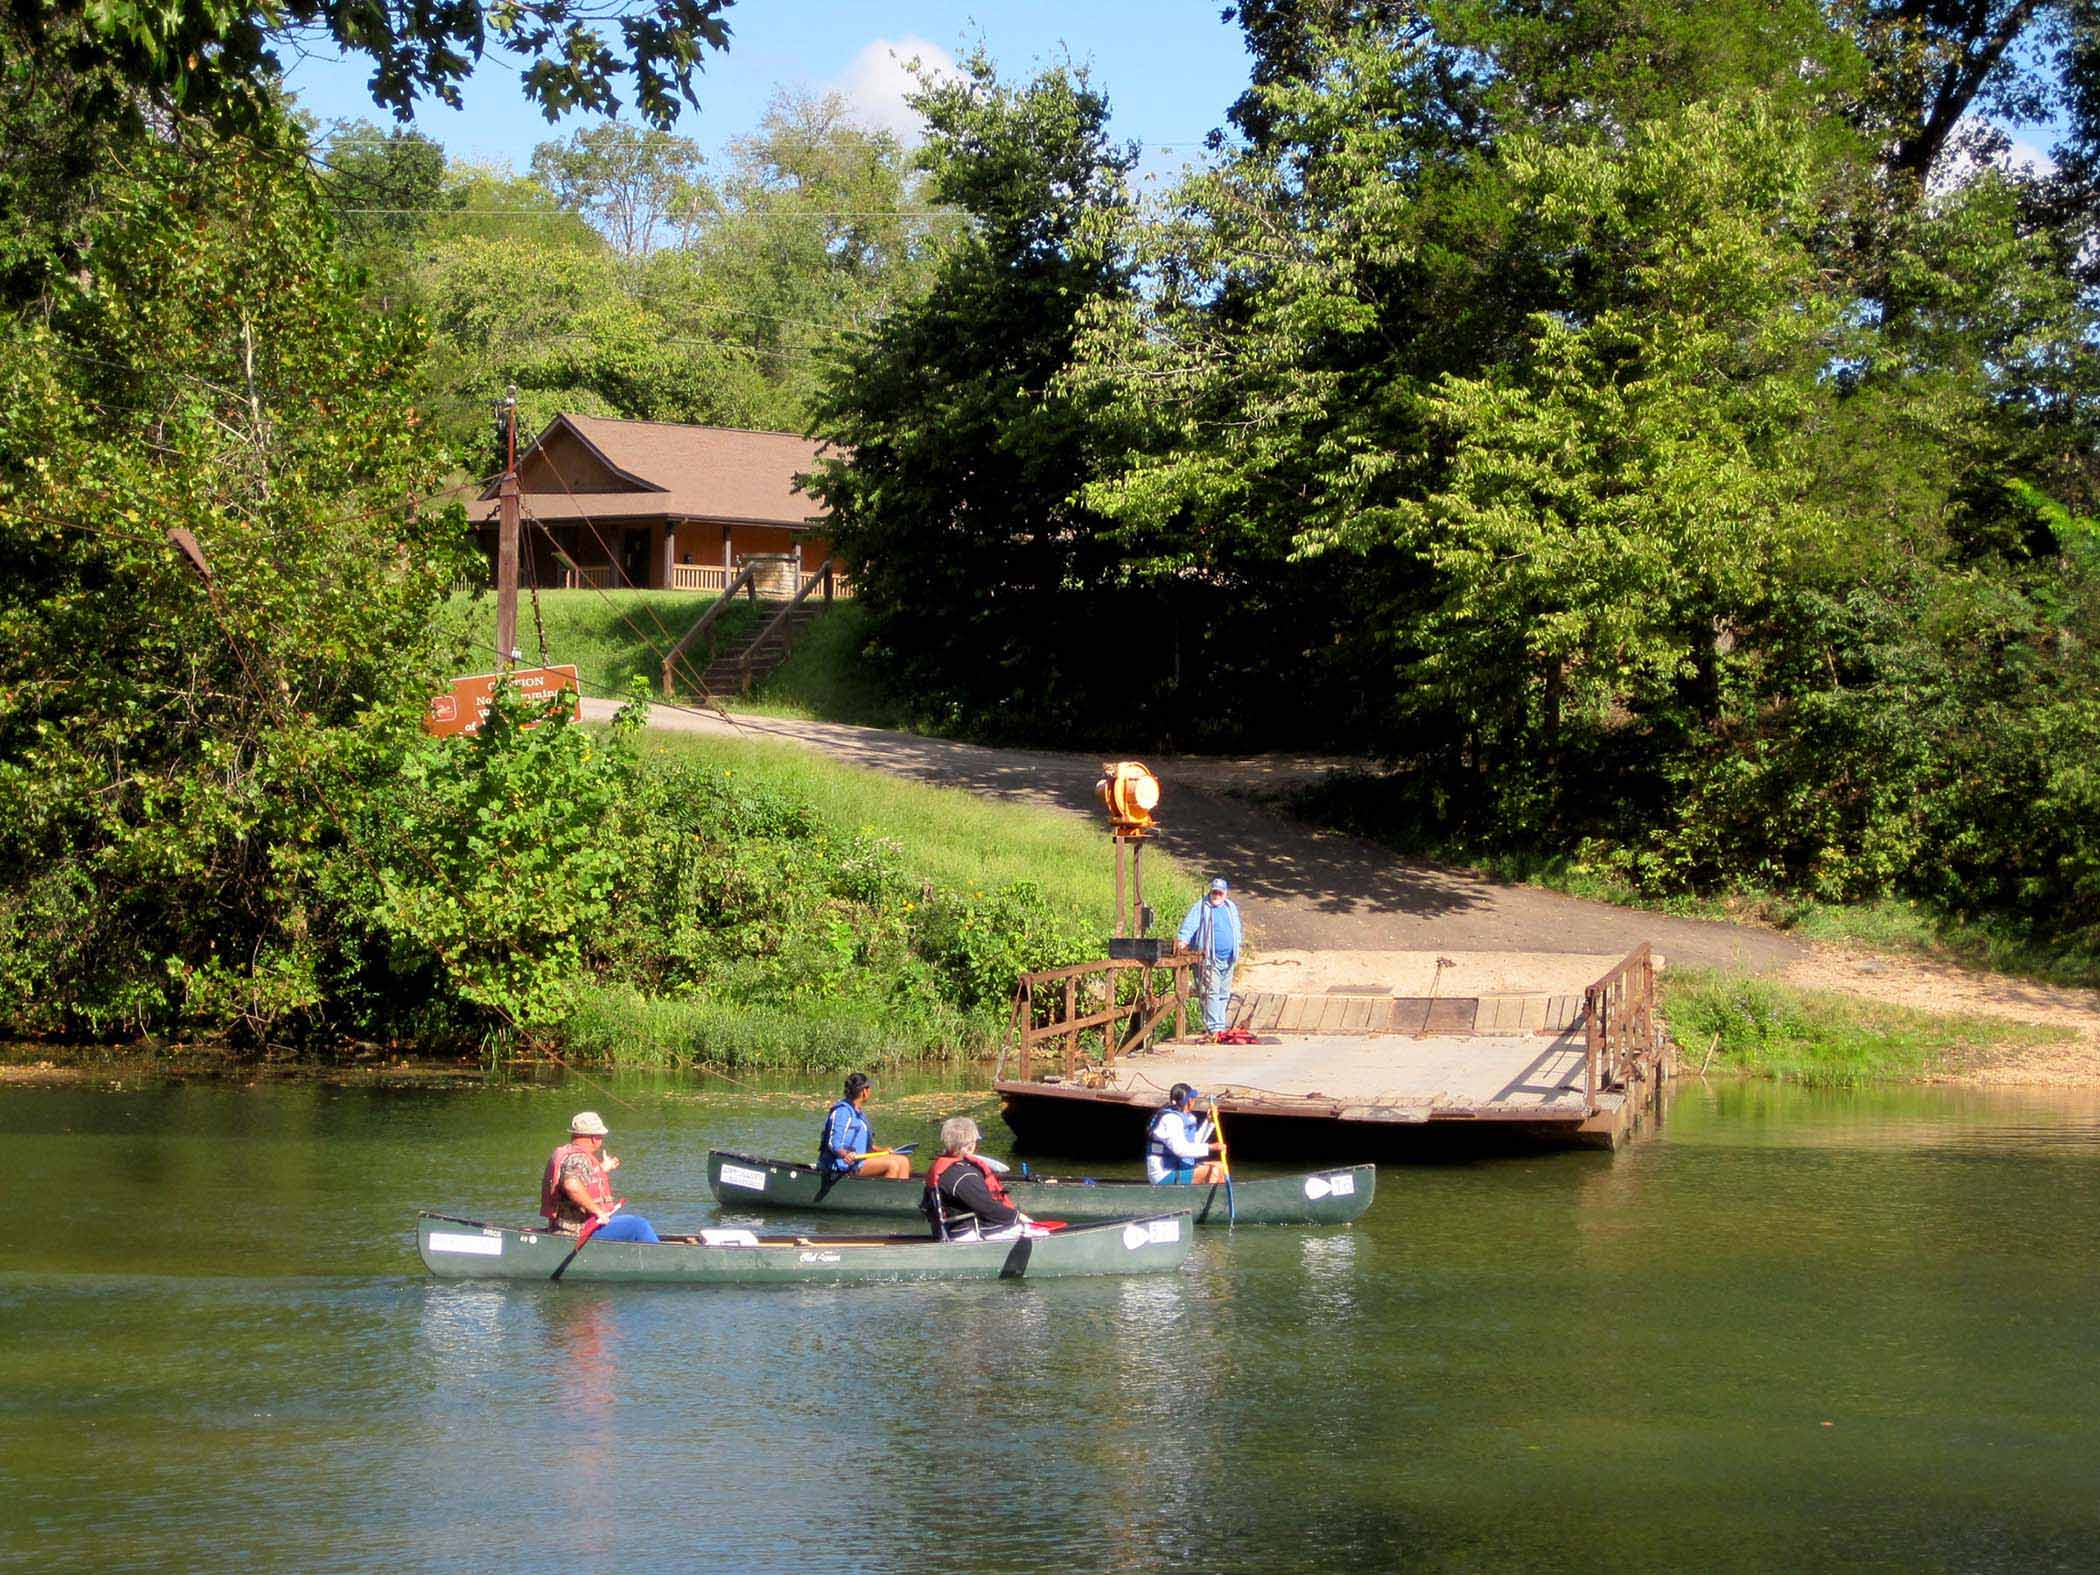 Two National Parks in the Ozarks - TravelWorld International